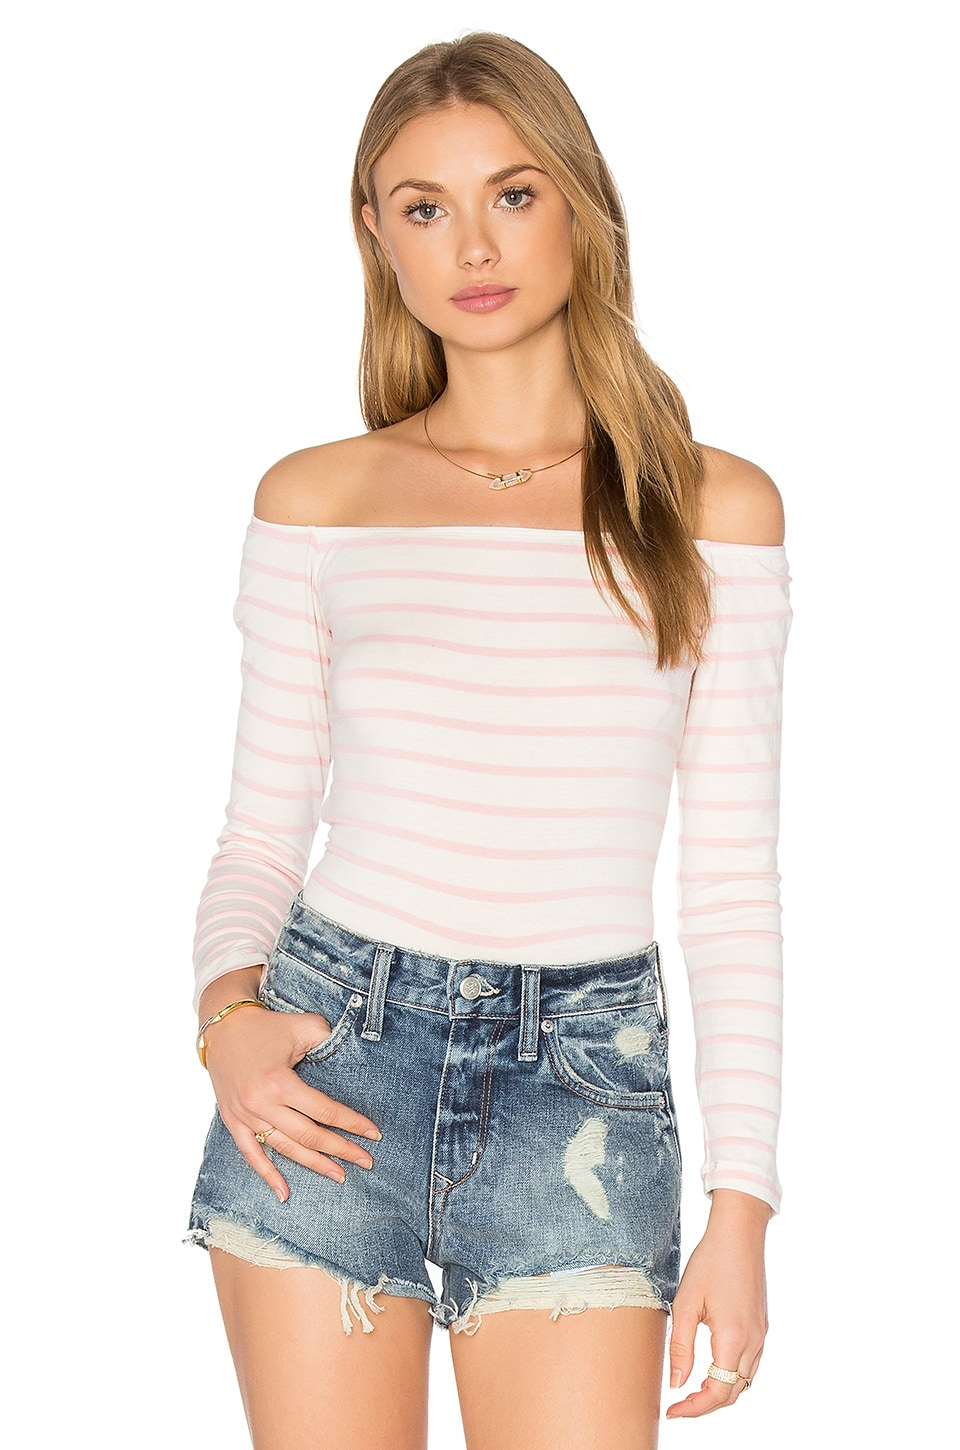 Shae Top by amour vert